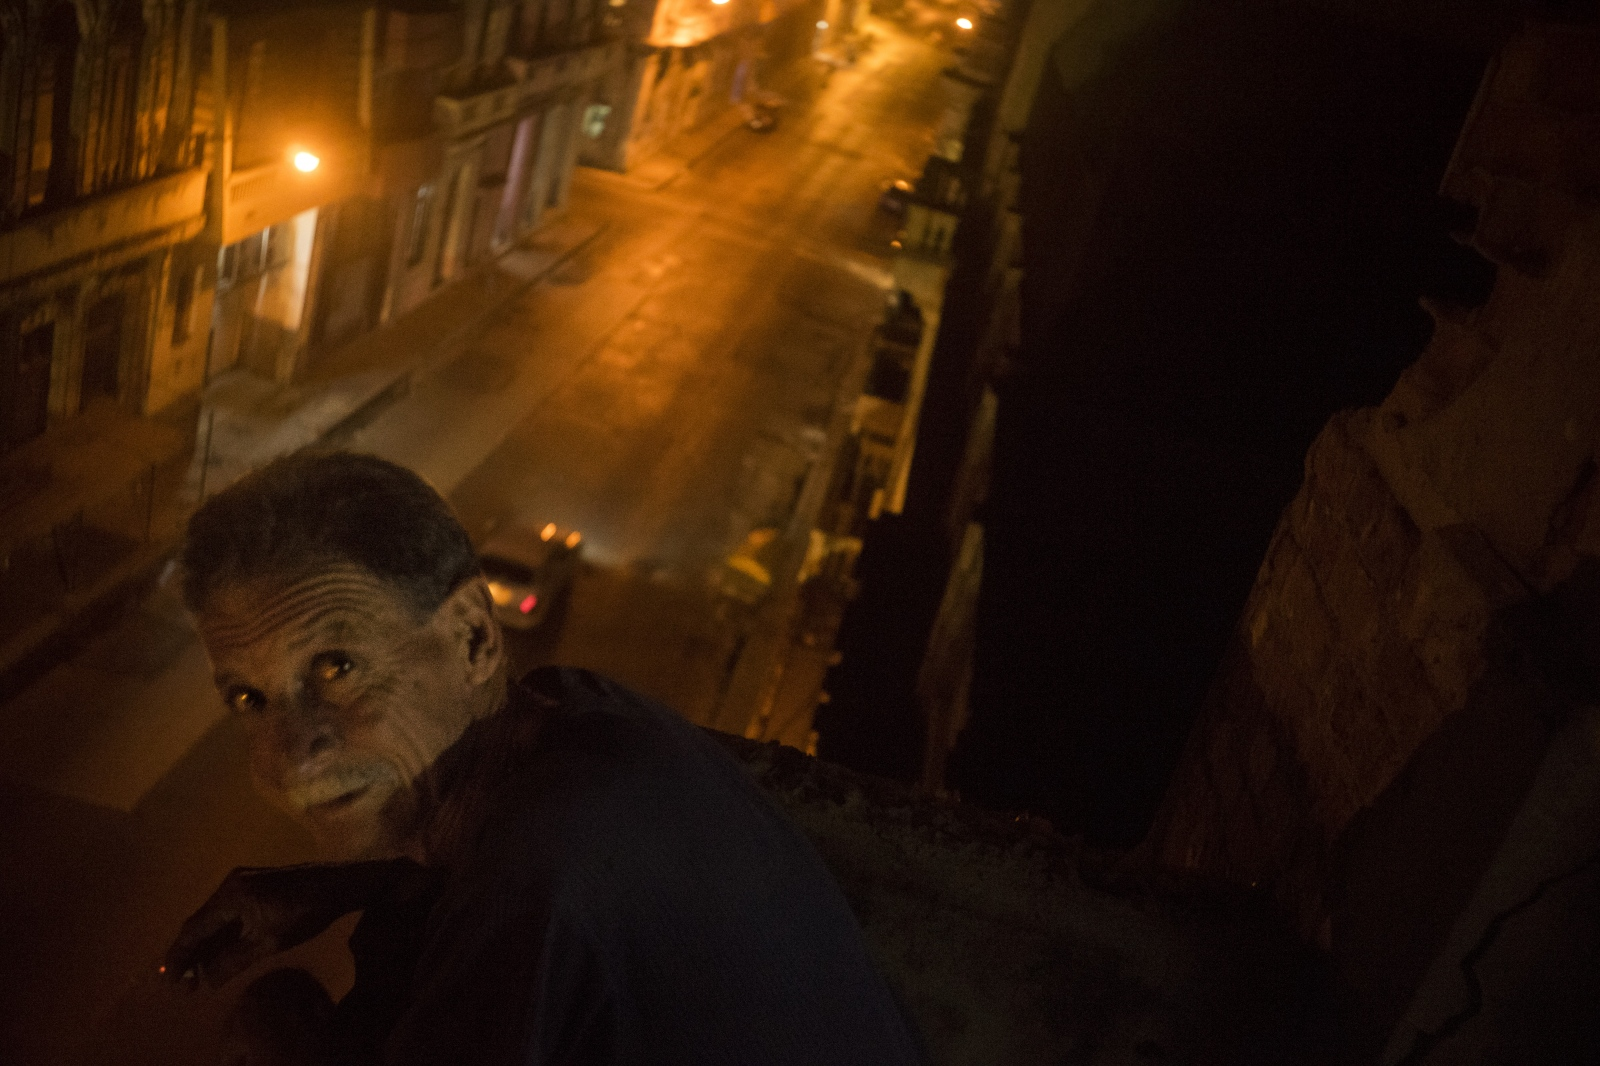 Carlos leans over his balcony while smoking a cigarette. He is an auto painter for a stateowned business.